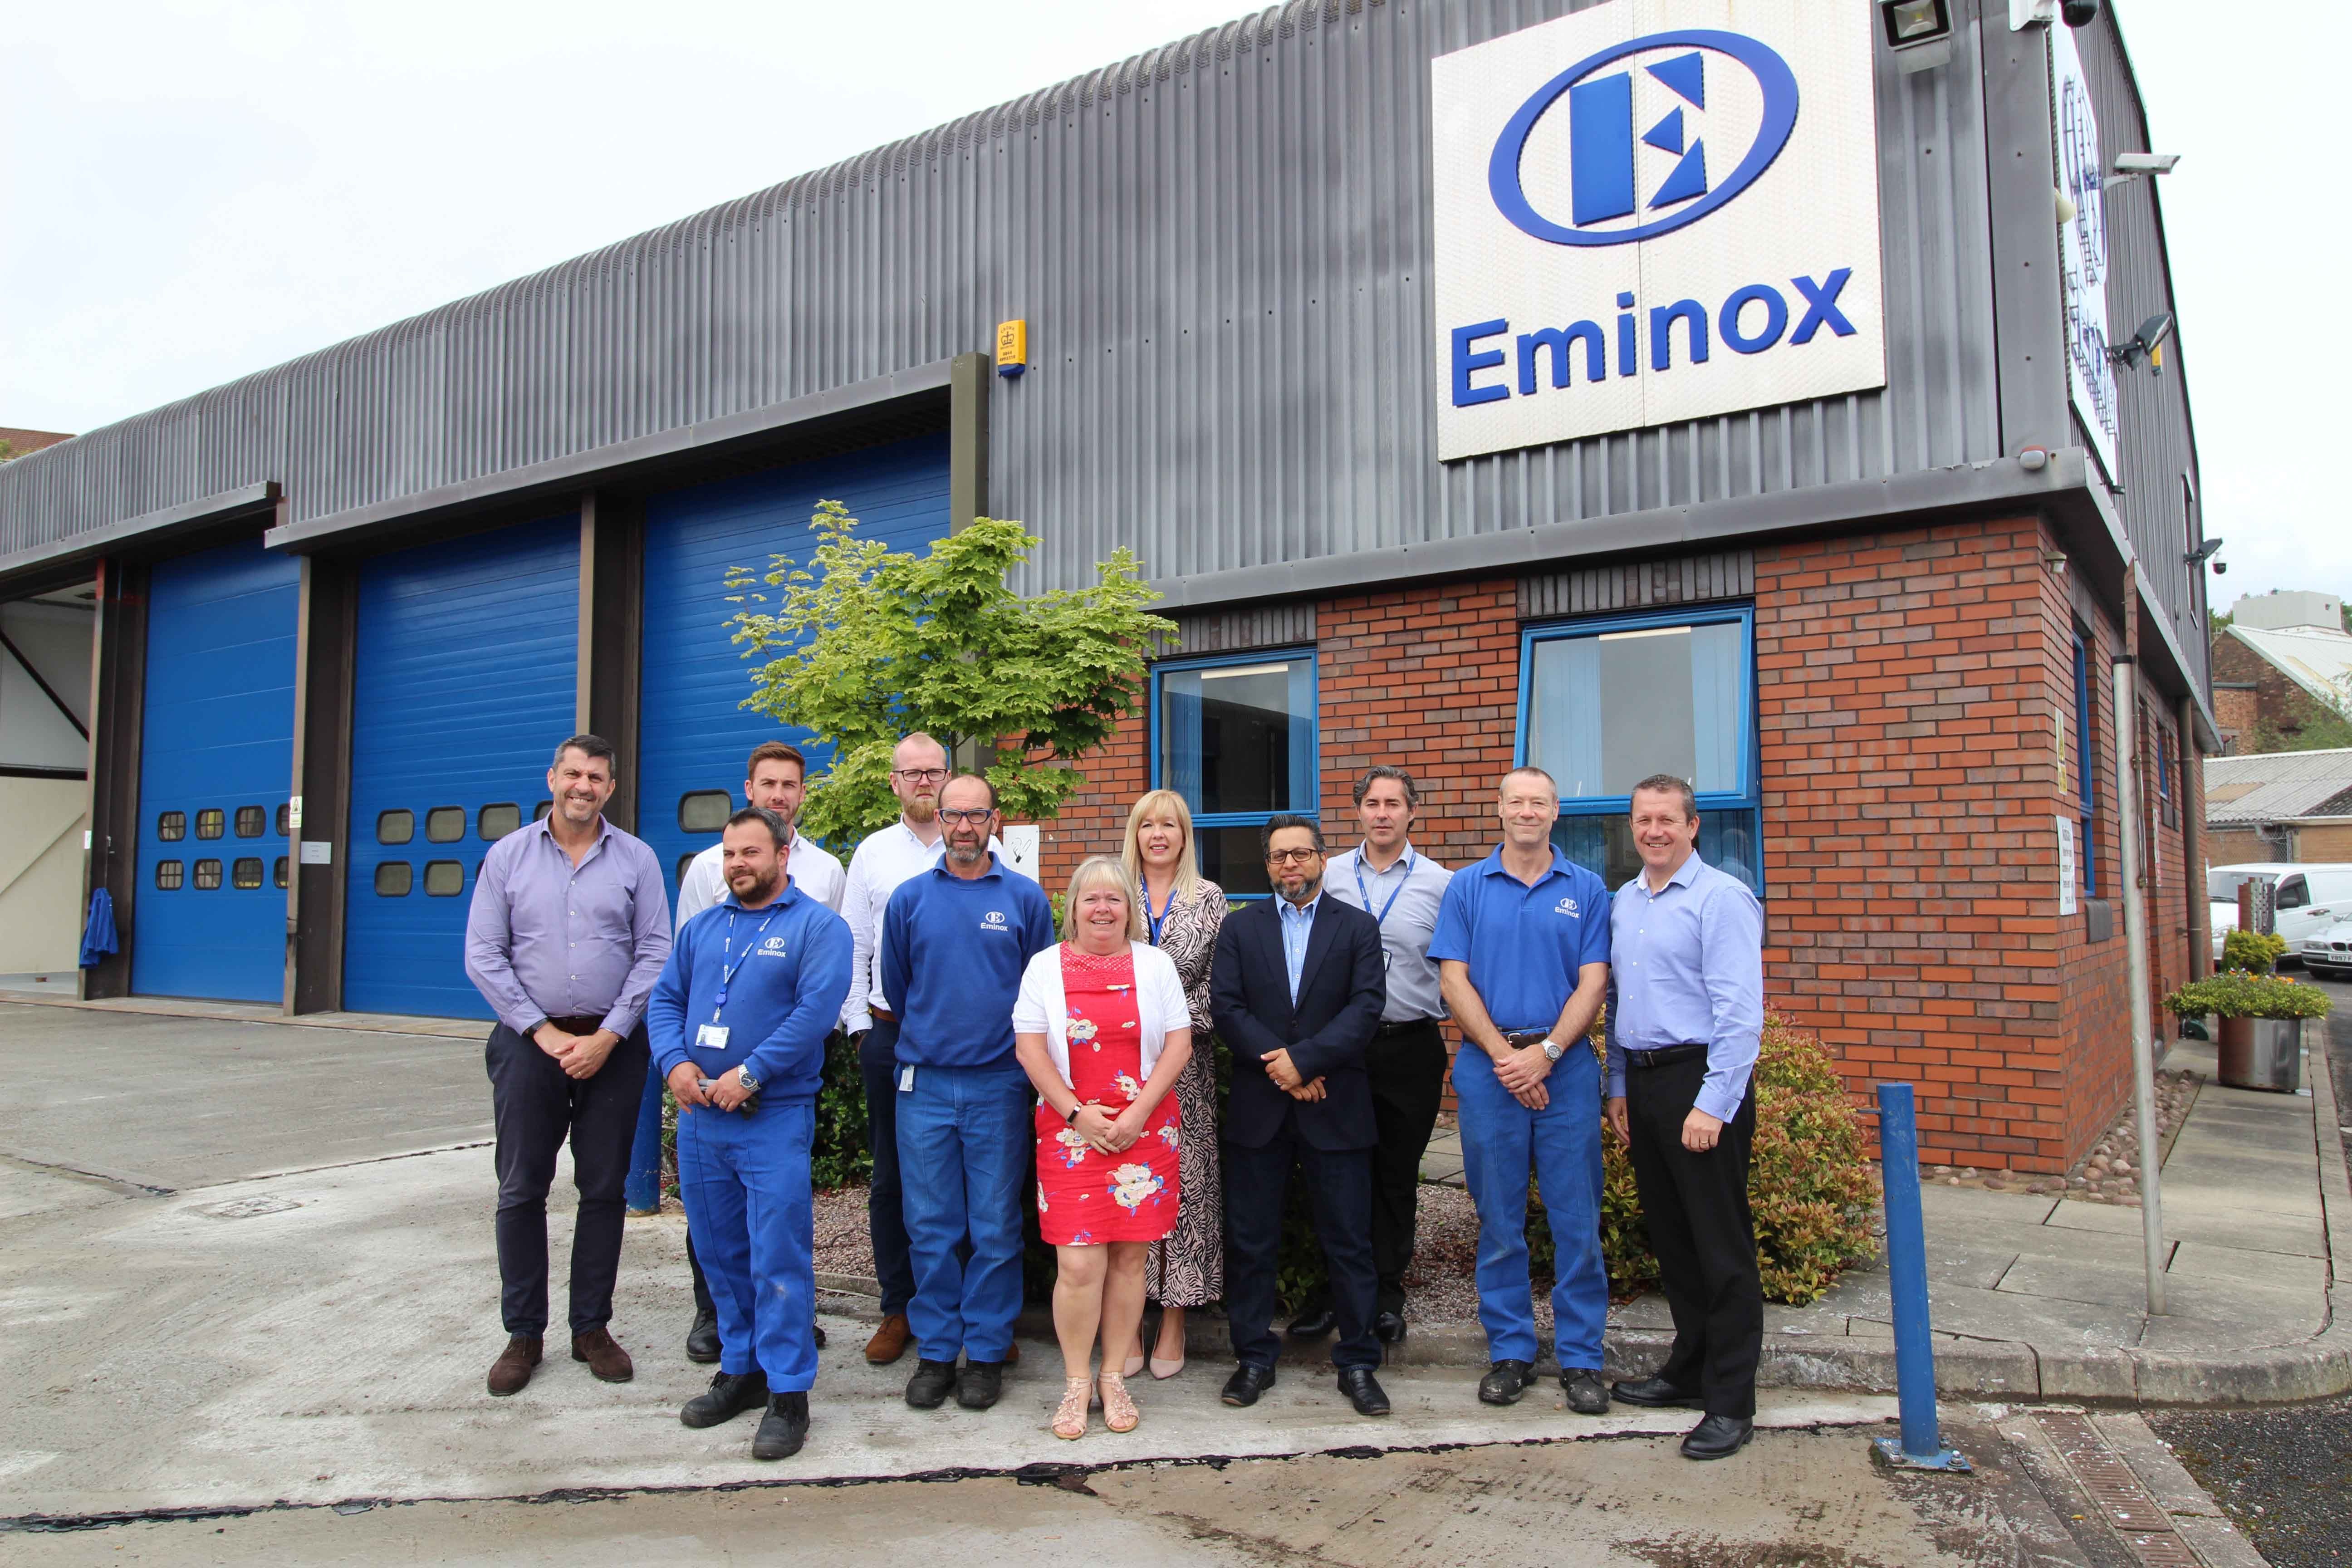 Eminox opens new Retrofit Service and Support Centre and